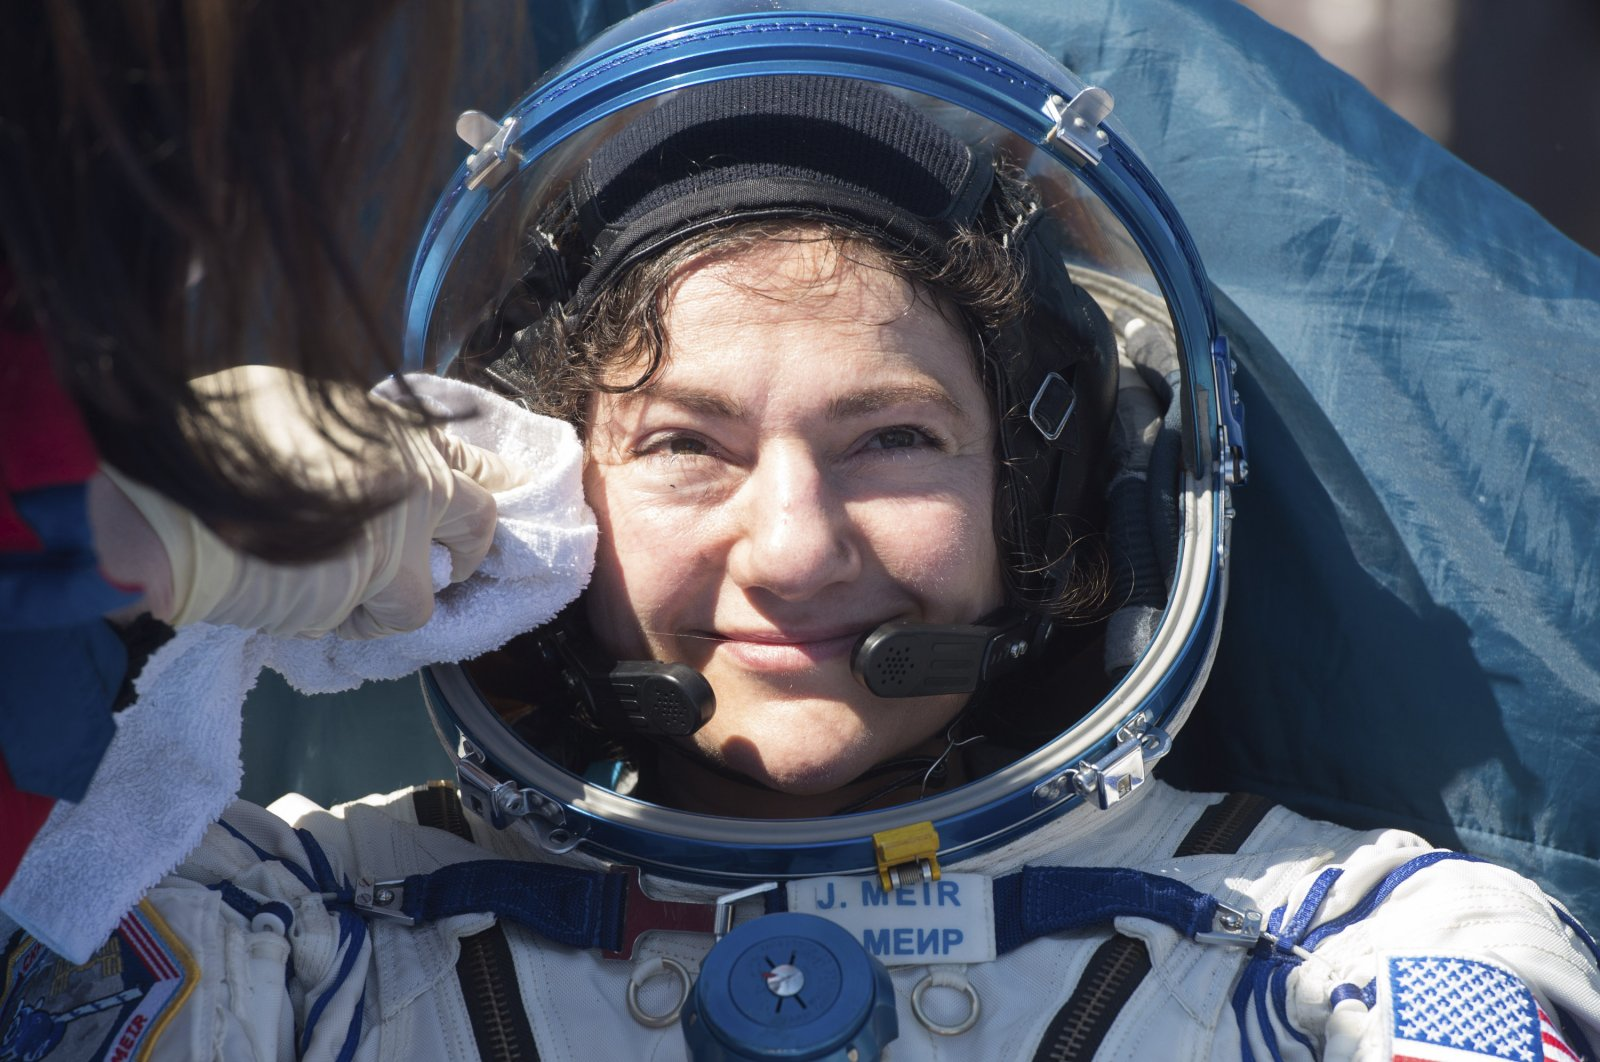 In this handout photo released by Gagarin Cosmonaut Training Centre (GCTC), Roscosmos space agency, U.S. astronaut Jessica Meir gets assistance shortly after the landing of the Russian Soyuz MS-15 space capsule near Kazakh town of Dzhezkazgan, Kazakhstan, Friday, April 17, 2020. (Roscosmos space agency via AP)